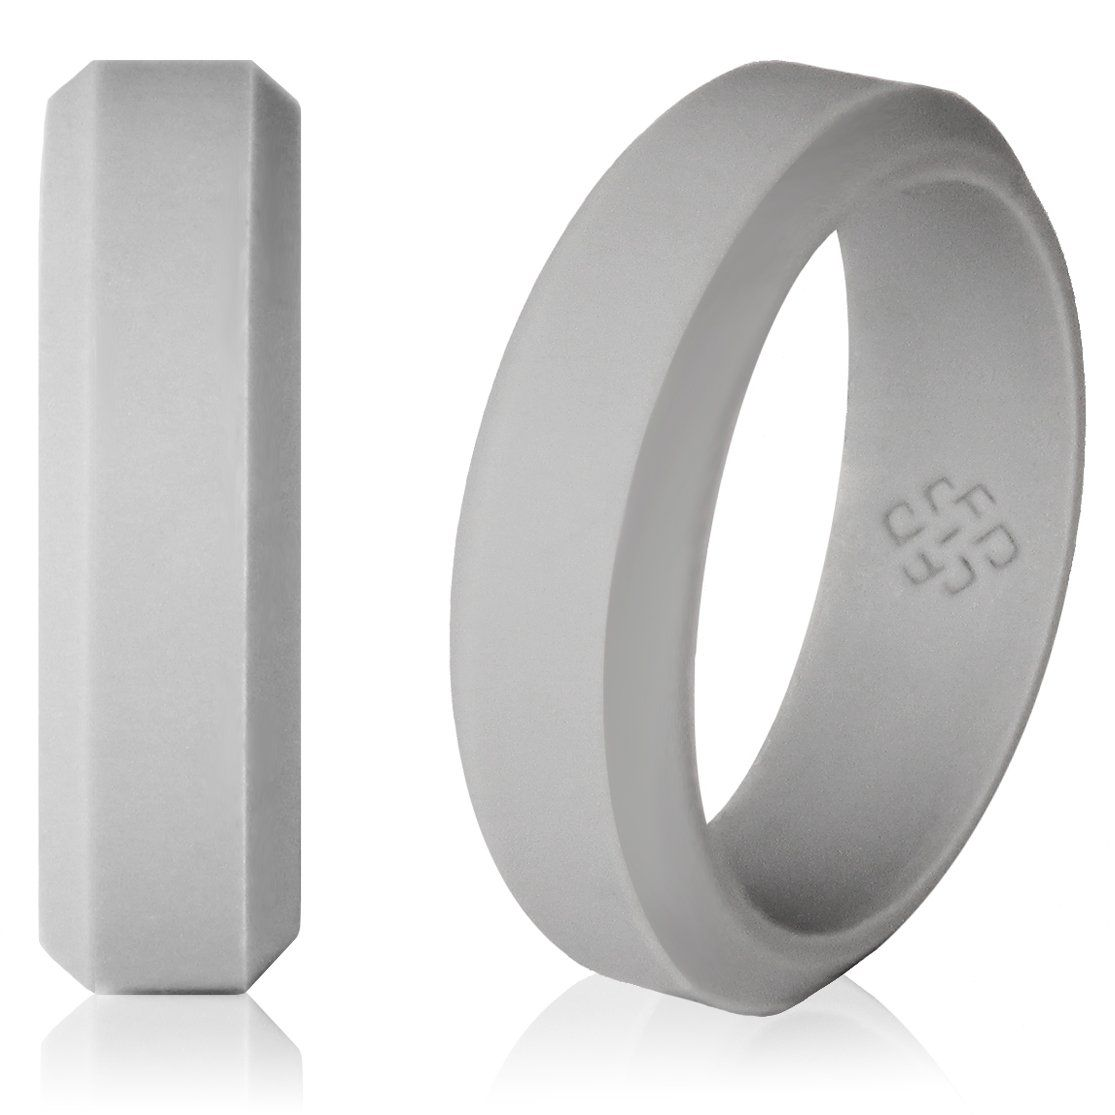 Light Gray Silicone Wedding Ring! Modern Beveled Design #cloud9 #gray #grey